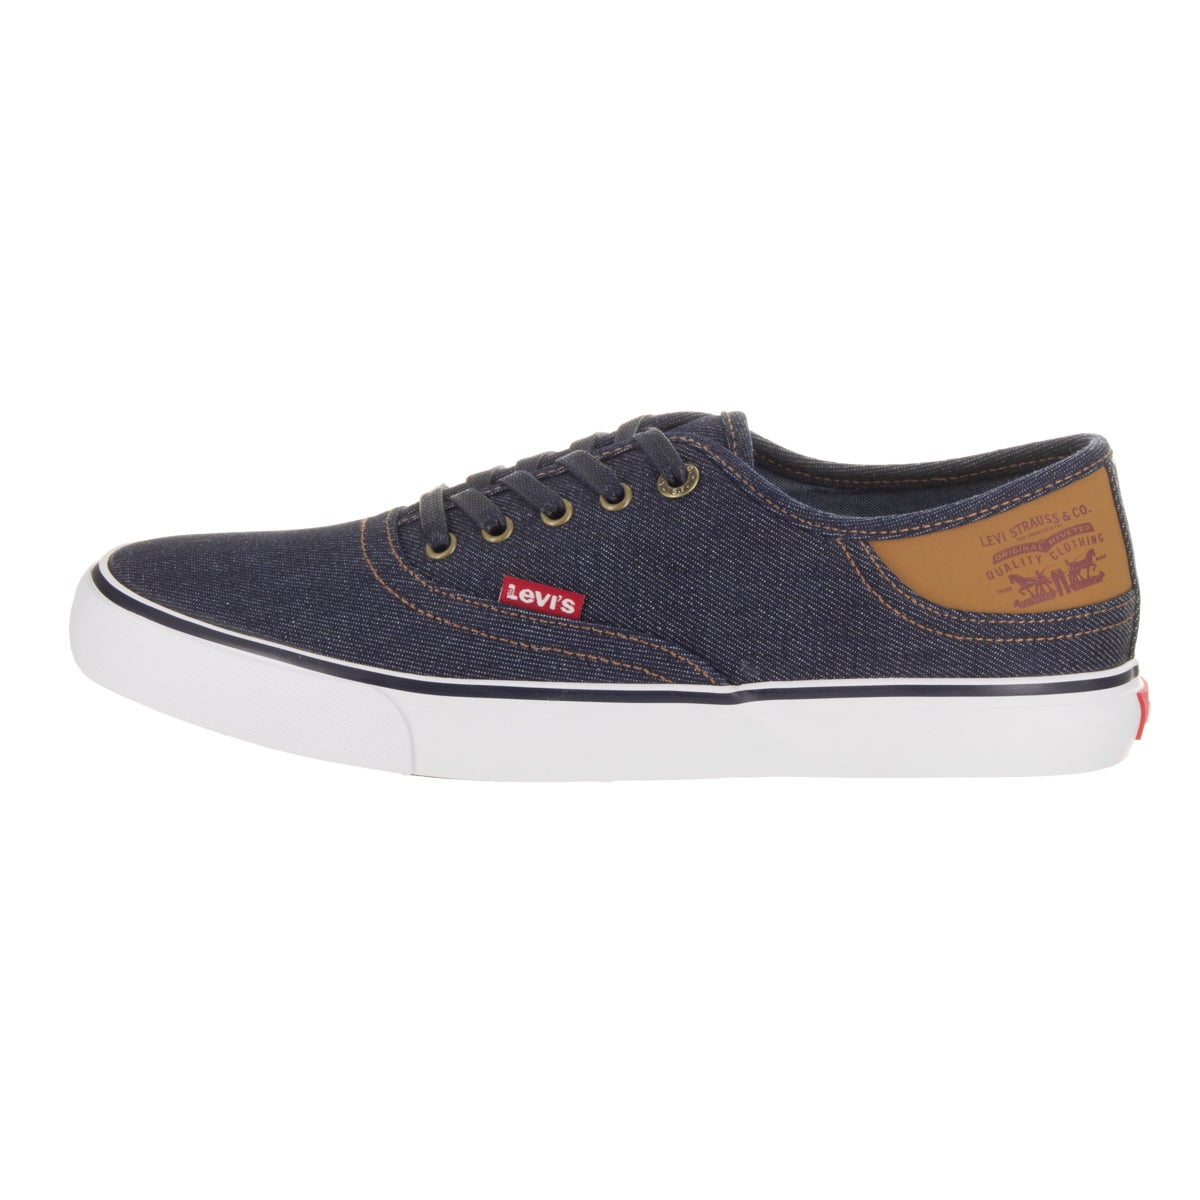 sale online shop Levi's Men's Monterey Buck Casua... outlet best prices g9LQiCd